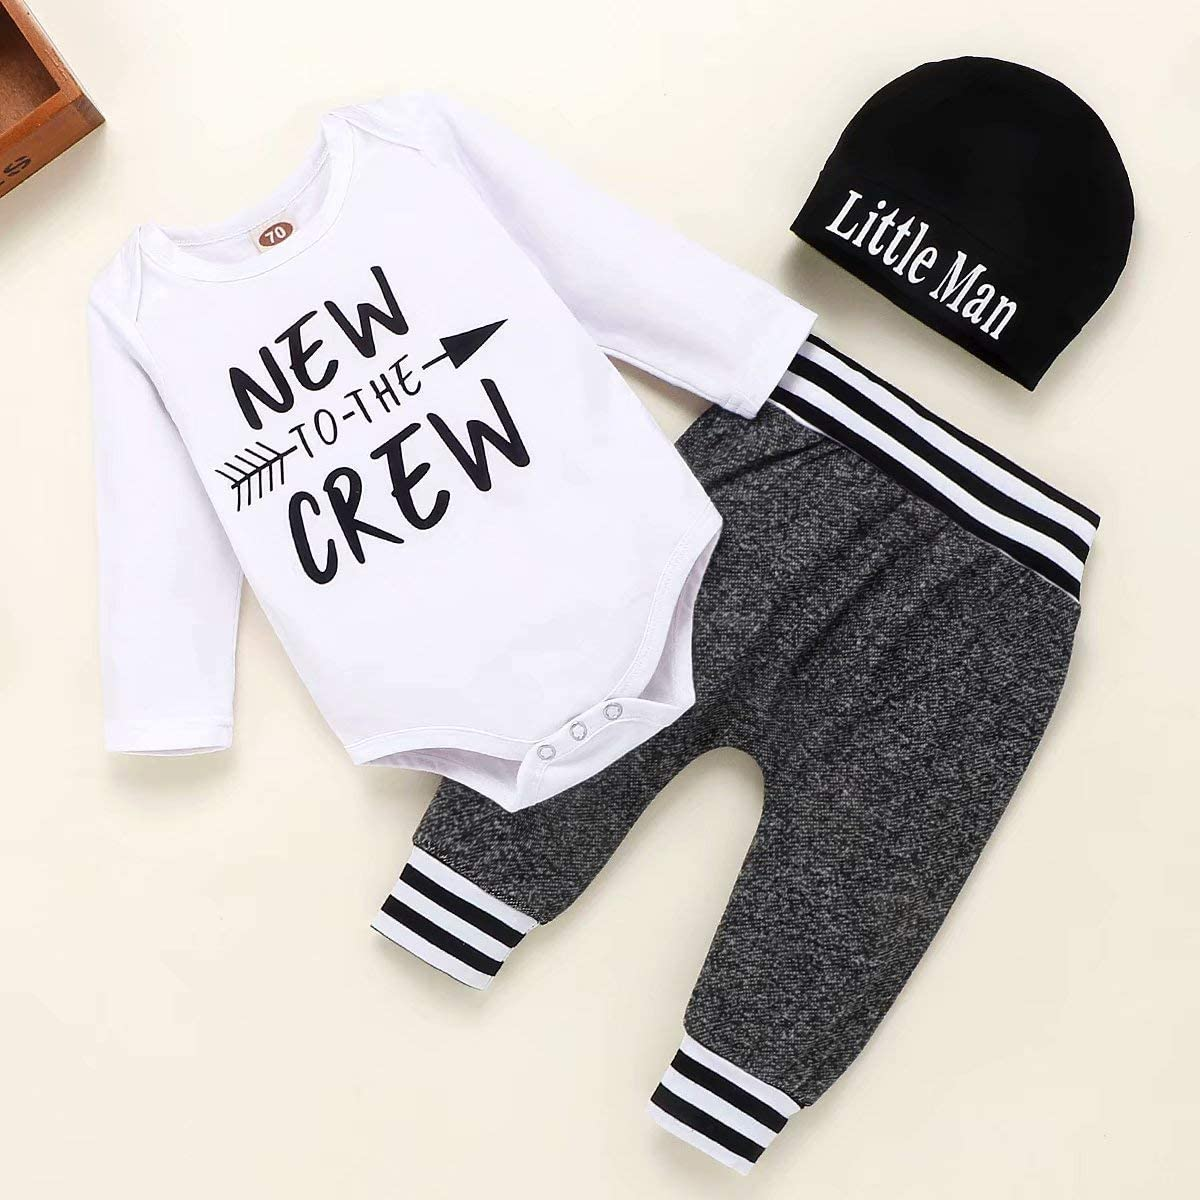 CETEPY Baby Boy Girl Clothes Romper Outfits 3Pcs Newborn Infant Boy Clothing